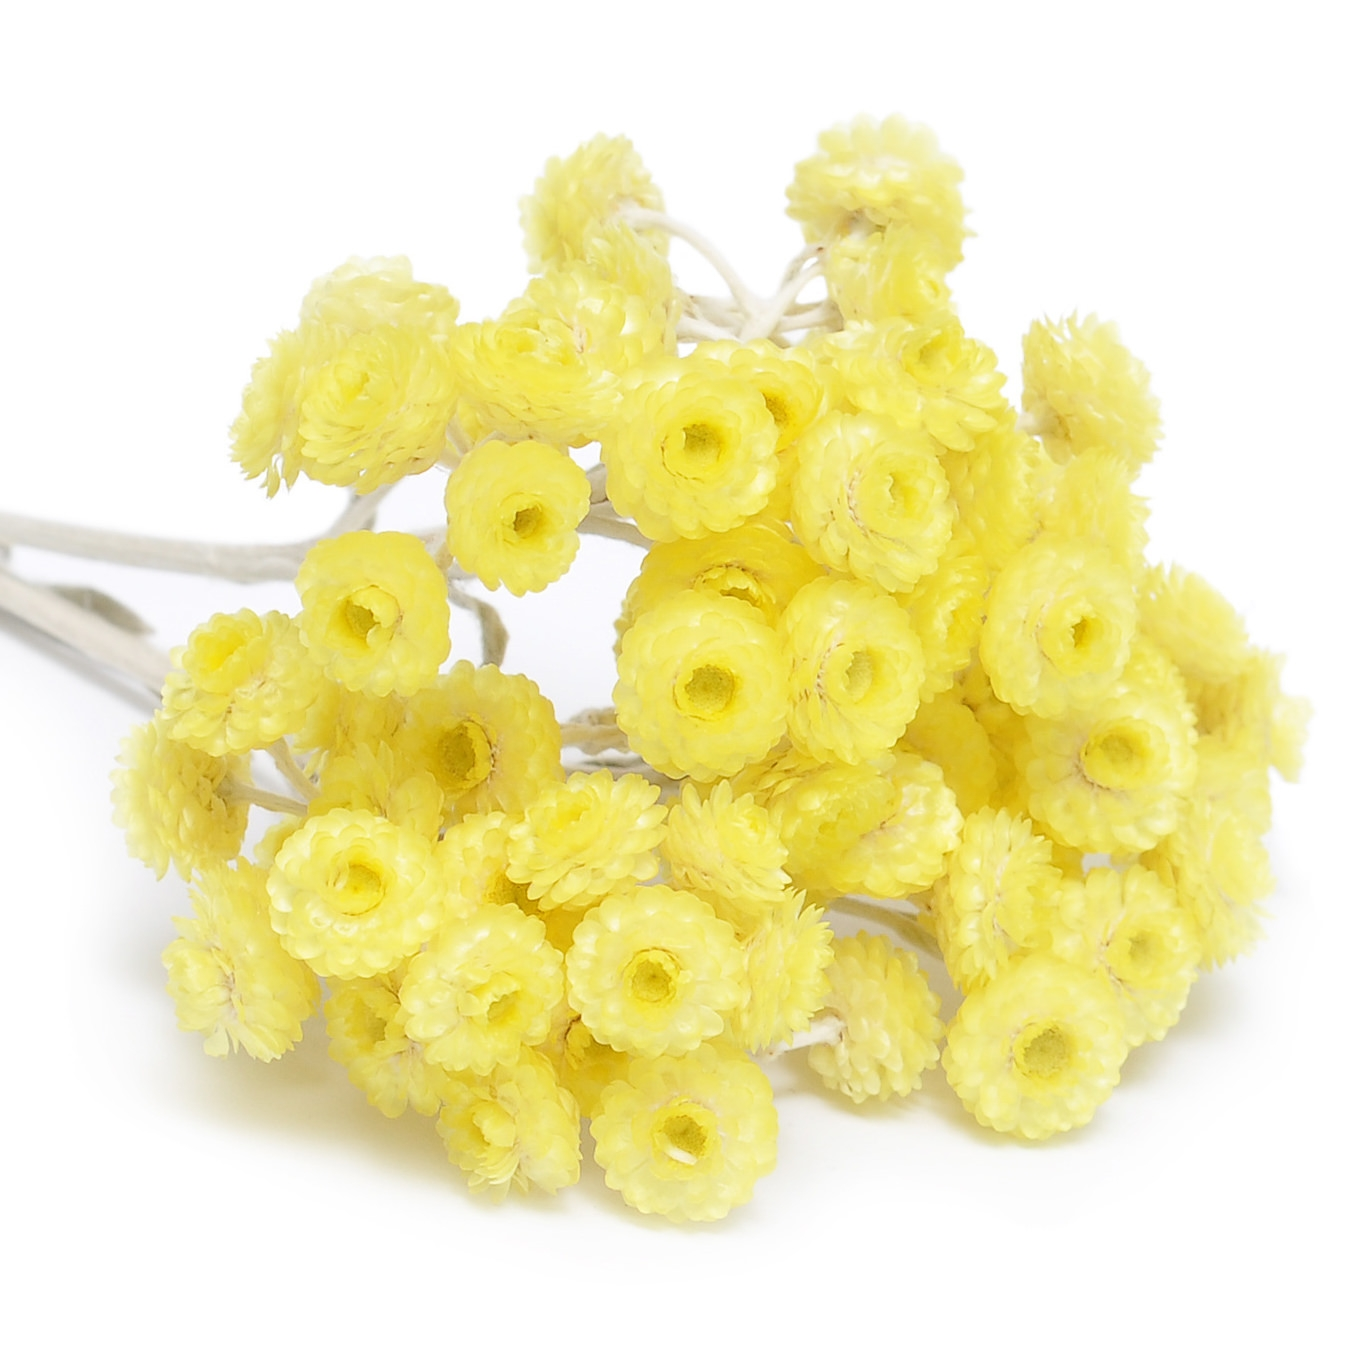 IMMORTELLE (HELICHRYSUM) EXTRACT (OIL SOLUBLE - SNO)